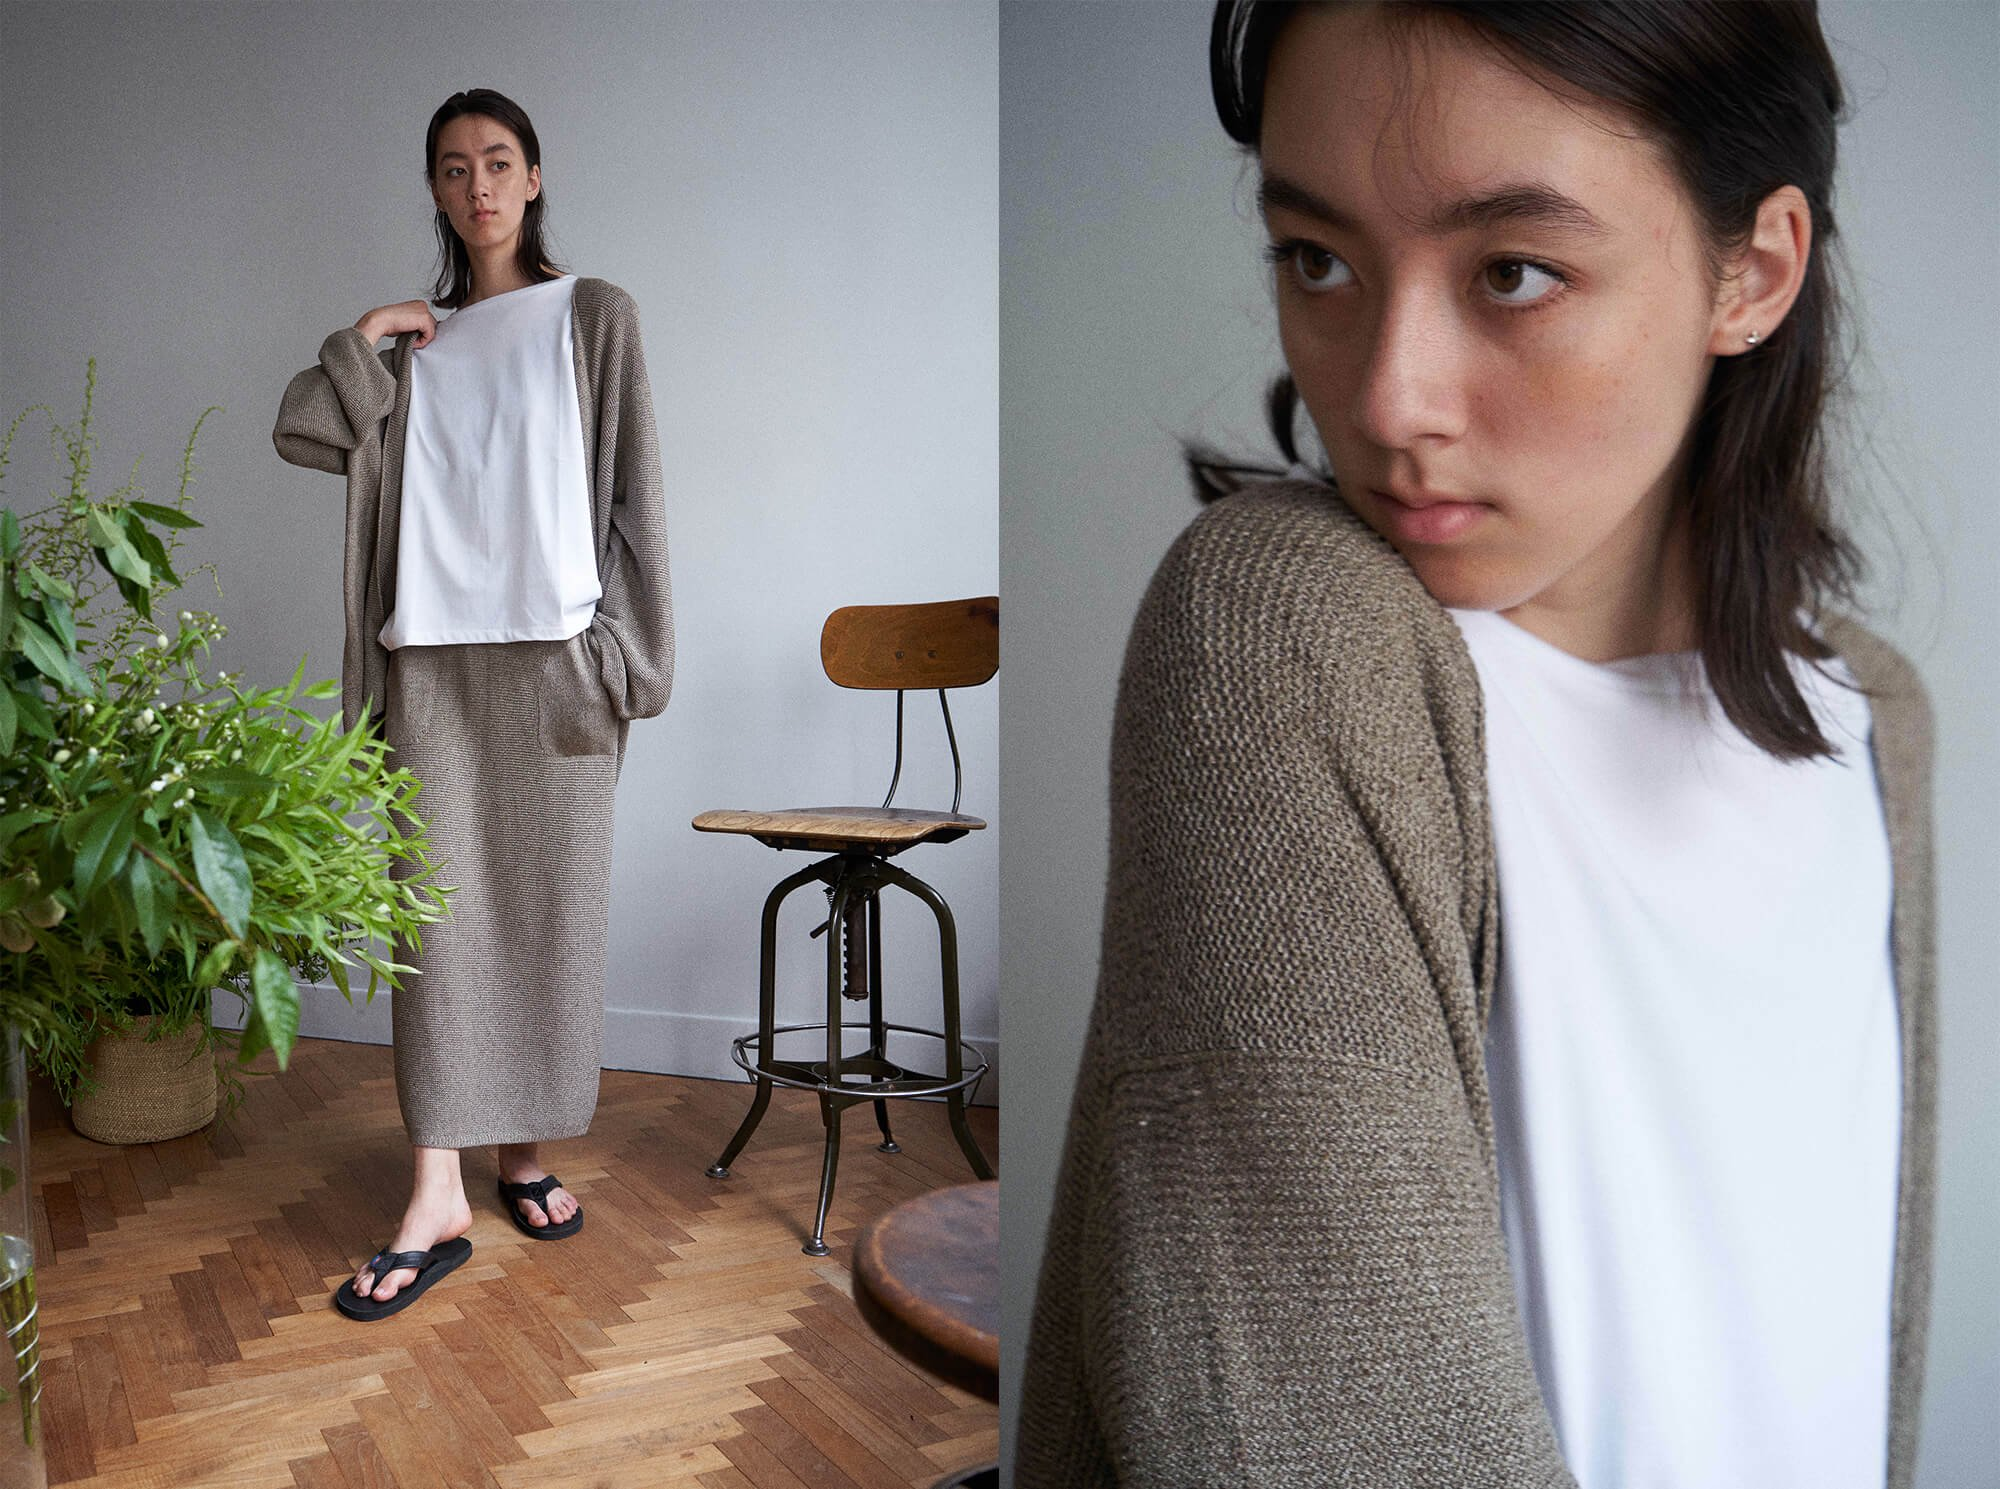 <img class='new_mark_img1' src='https://img.shop-pro.jp/img/new/icons14.gif' style='border:none;display:inline;margin:0px;padding:0px;width:auto;' />mulberry & raw silk knit cardigan